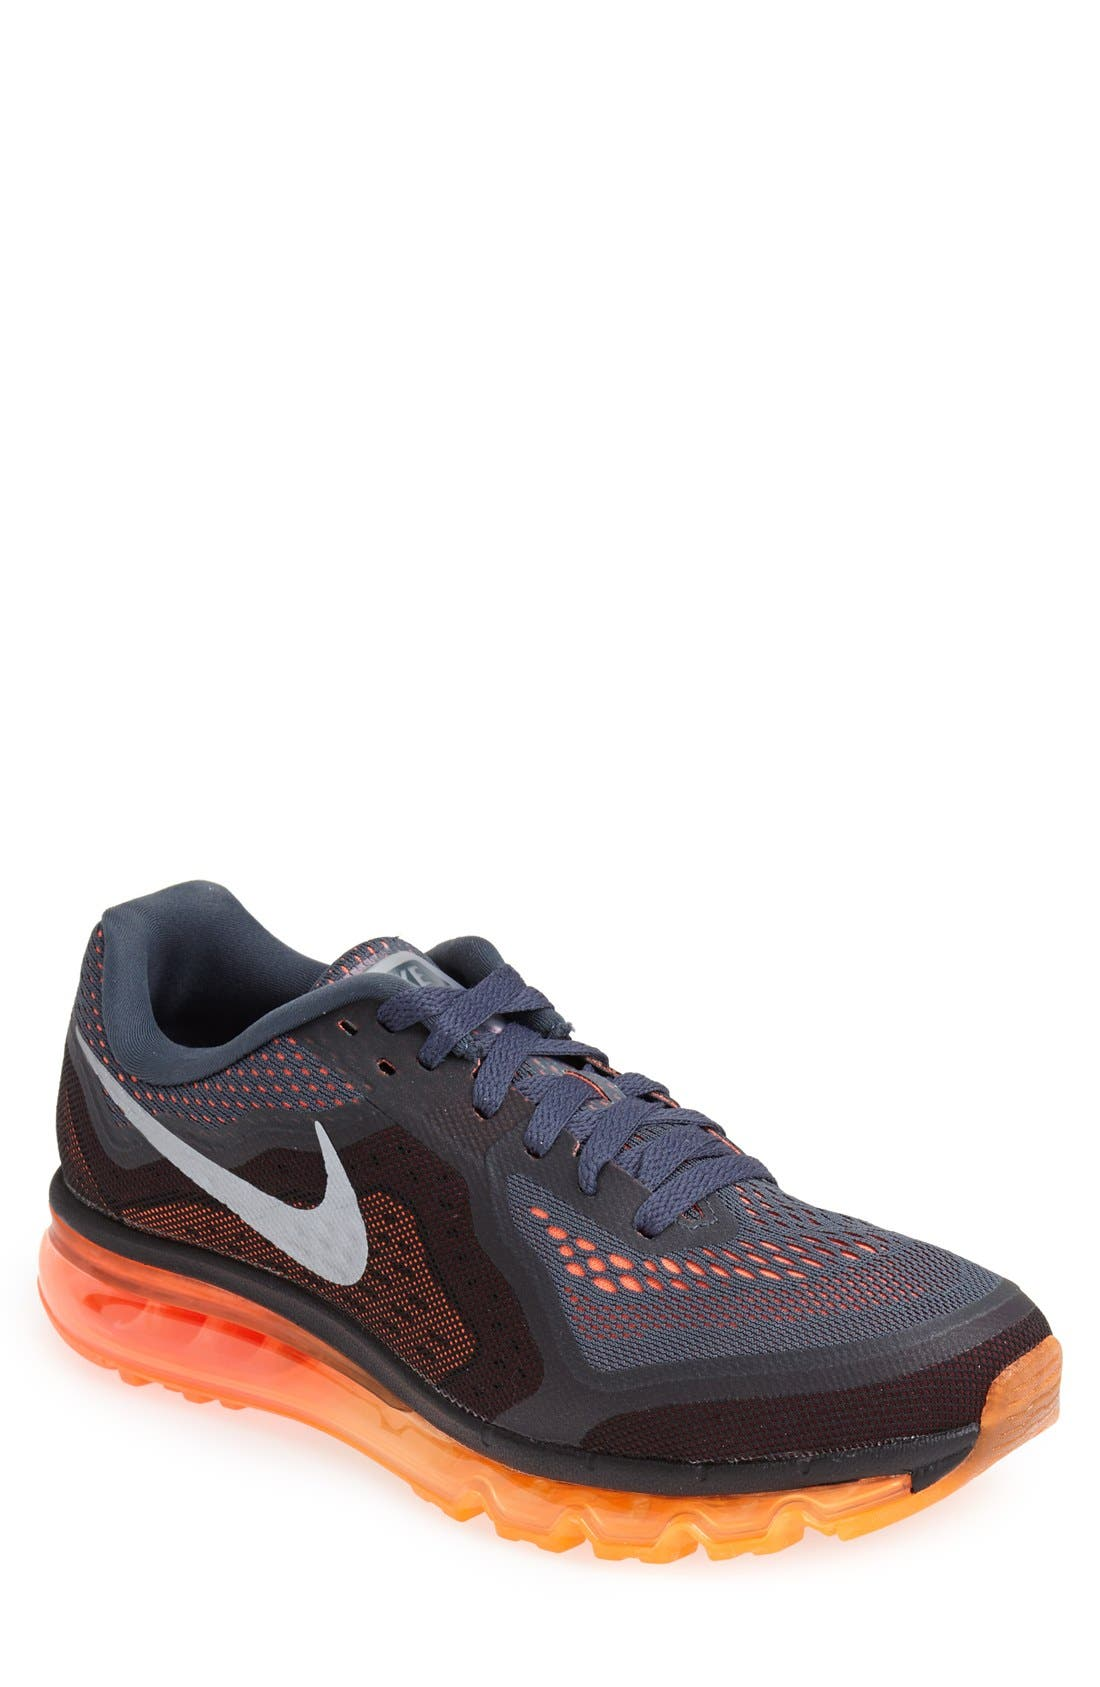 Main Image - Nike 'Air Max 2014' Running Shoe (Men)